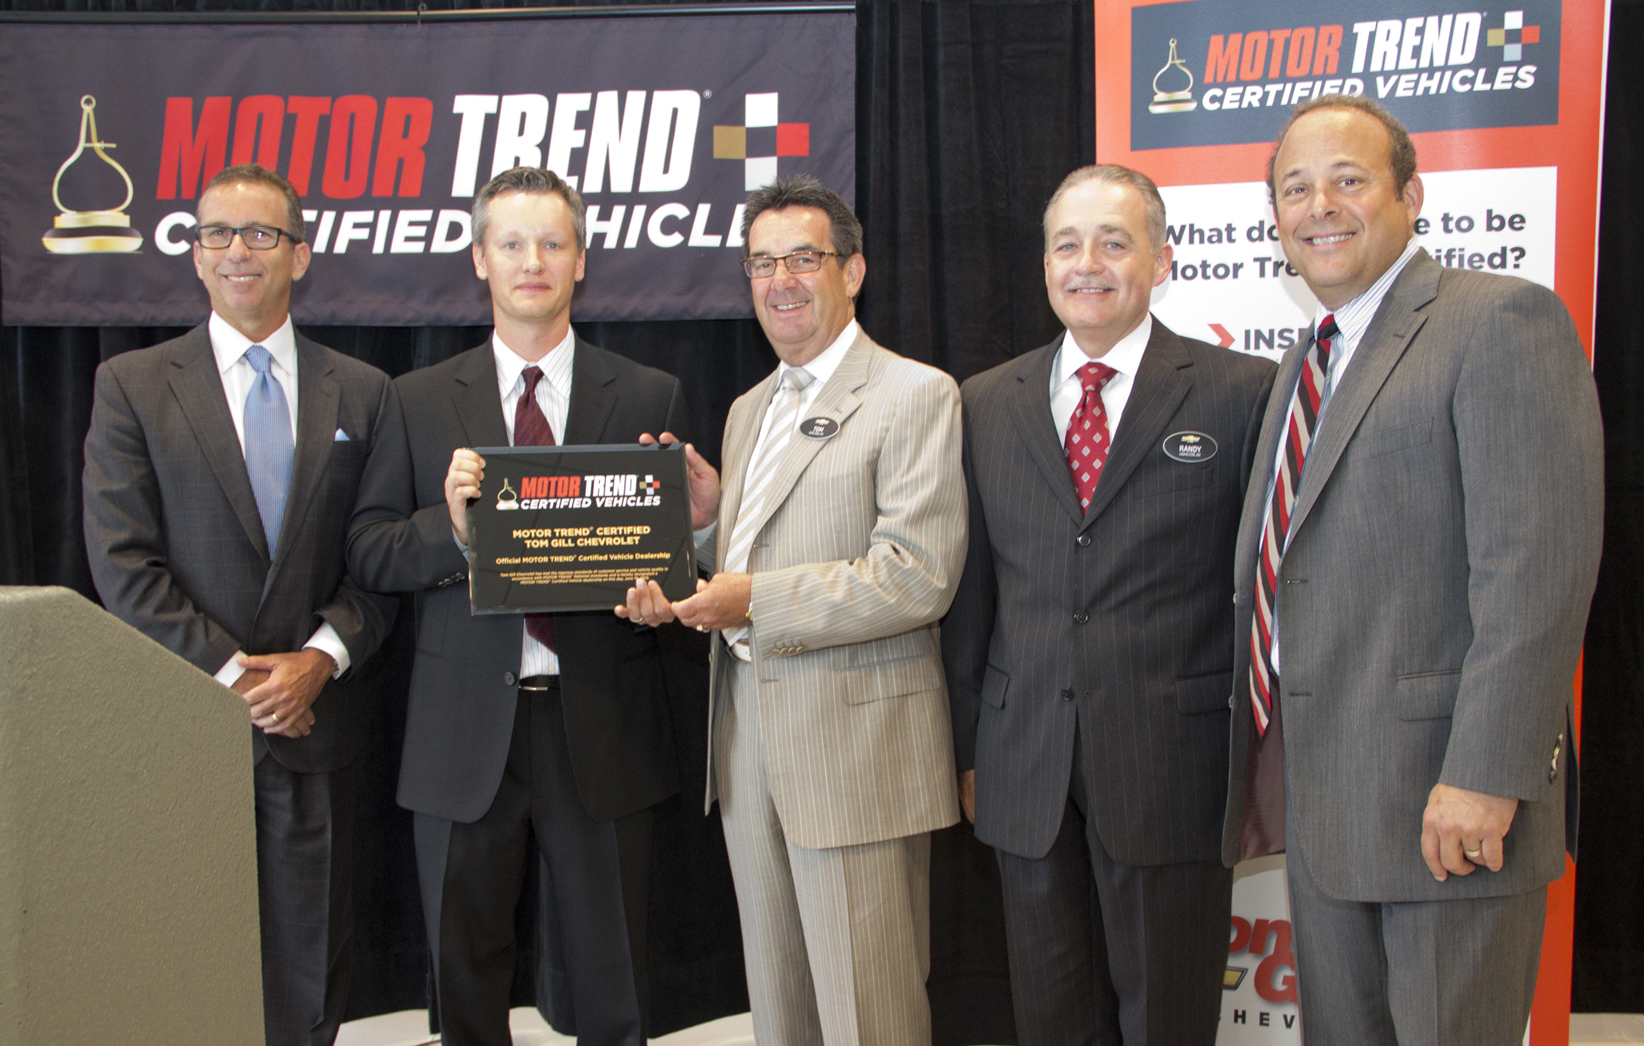 tom gill chevrolet designated as motor trend® certified dealership